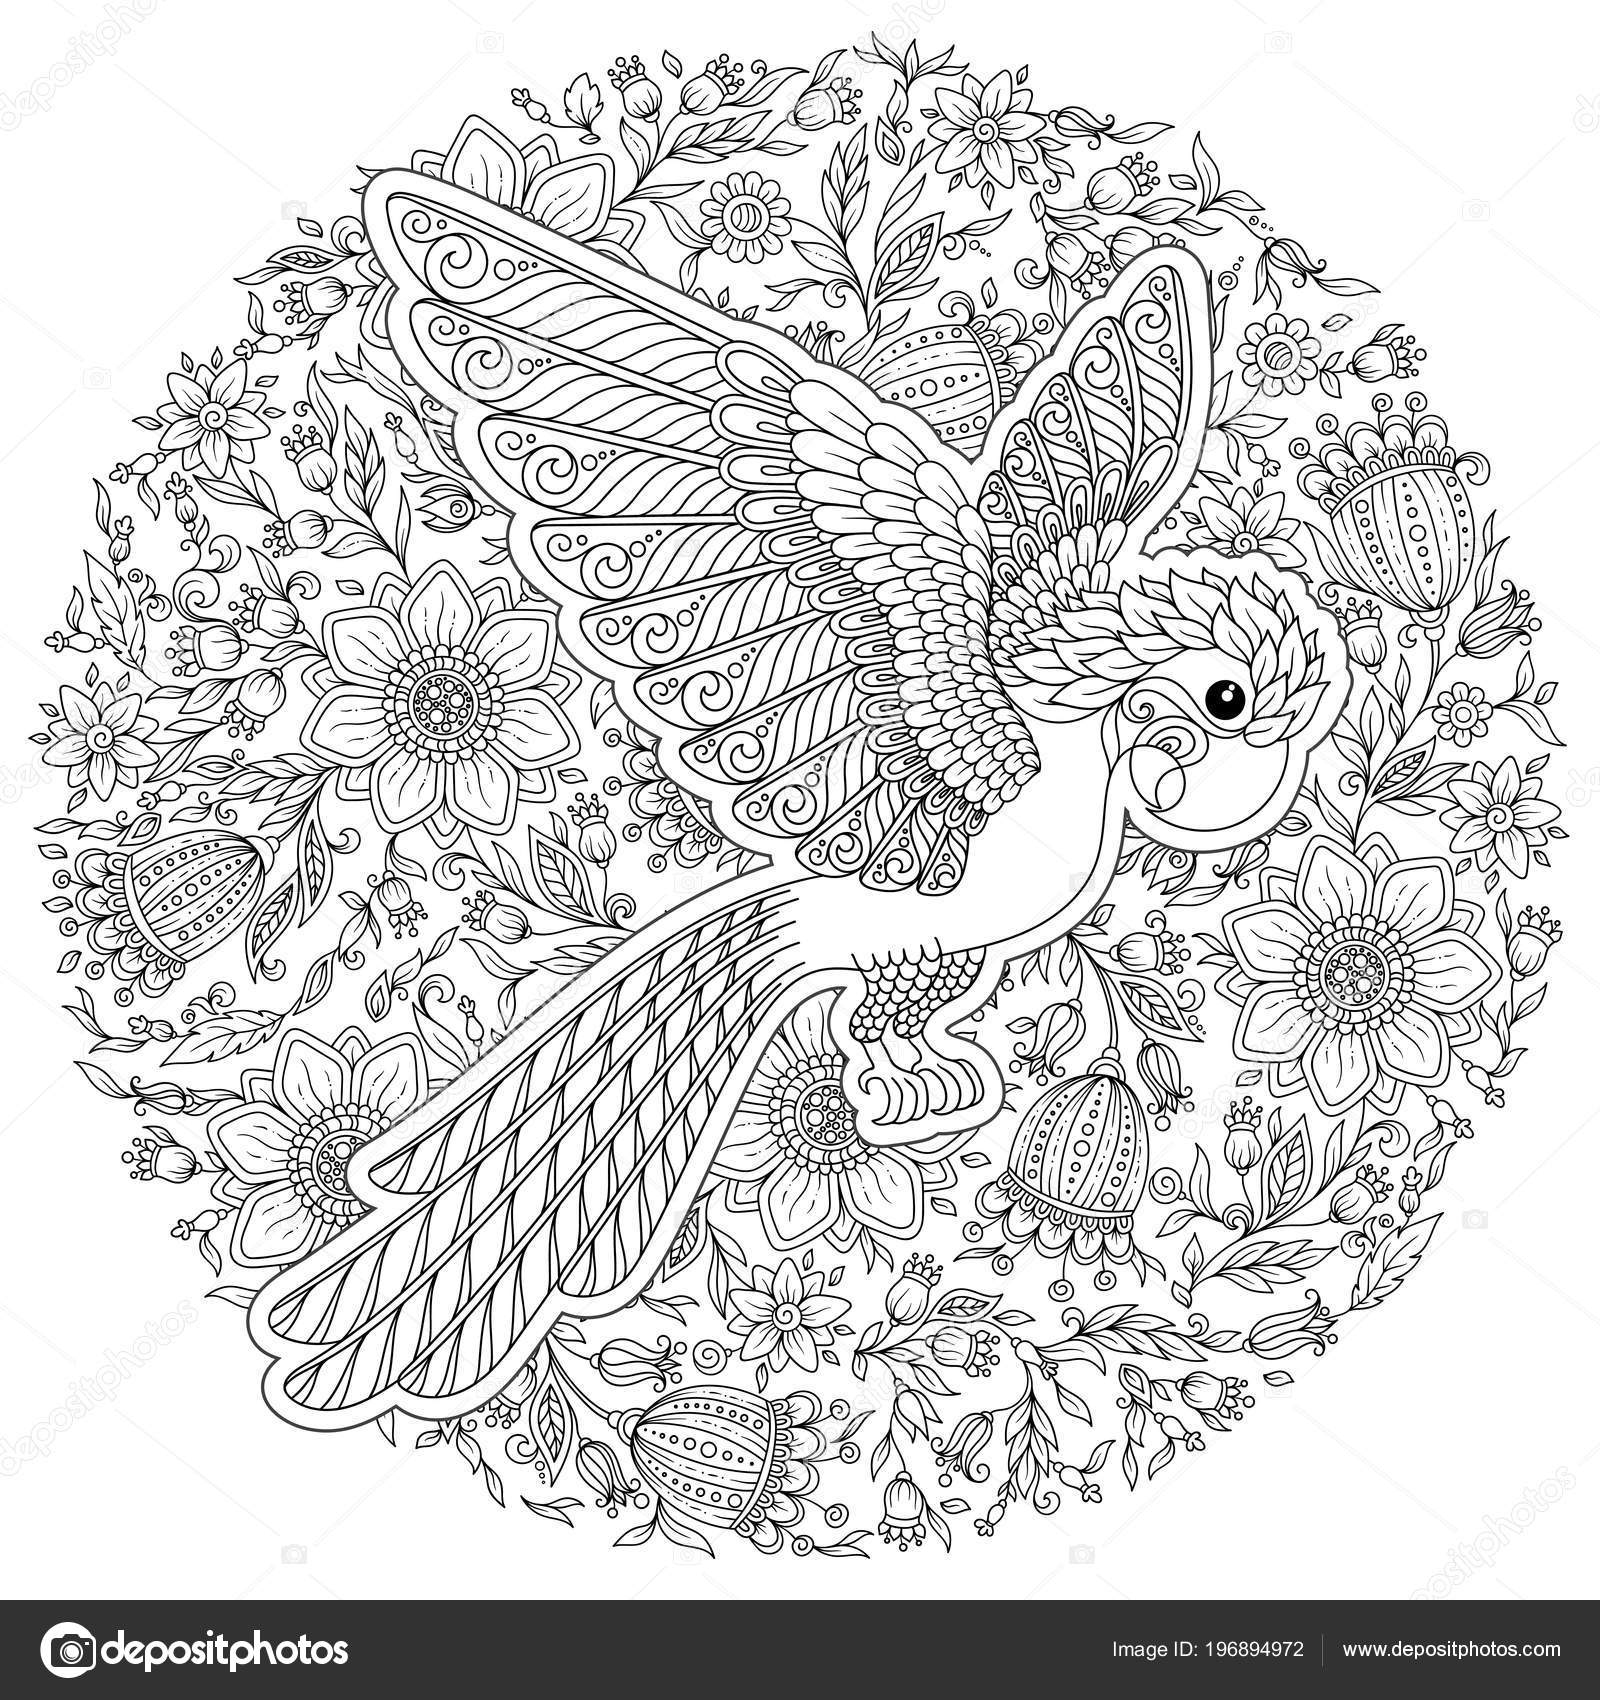 Coloriage Anti Stress Perroquet.Zentangle Stylisee Perroquet Dessin Anime Croquis Dessine